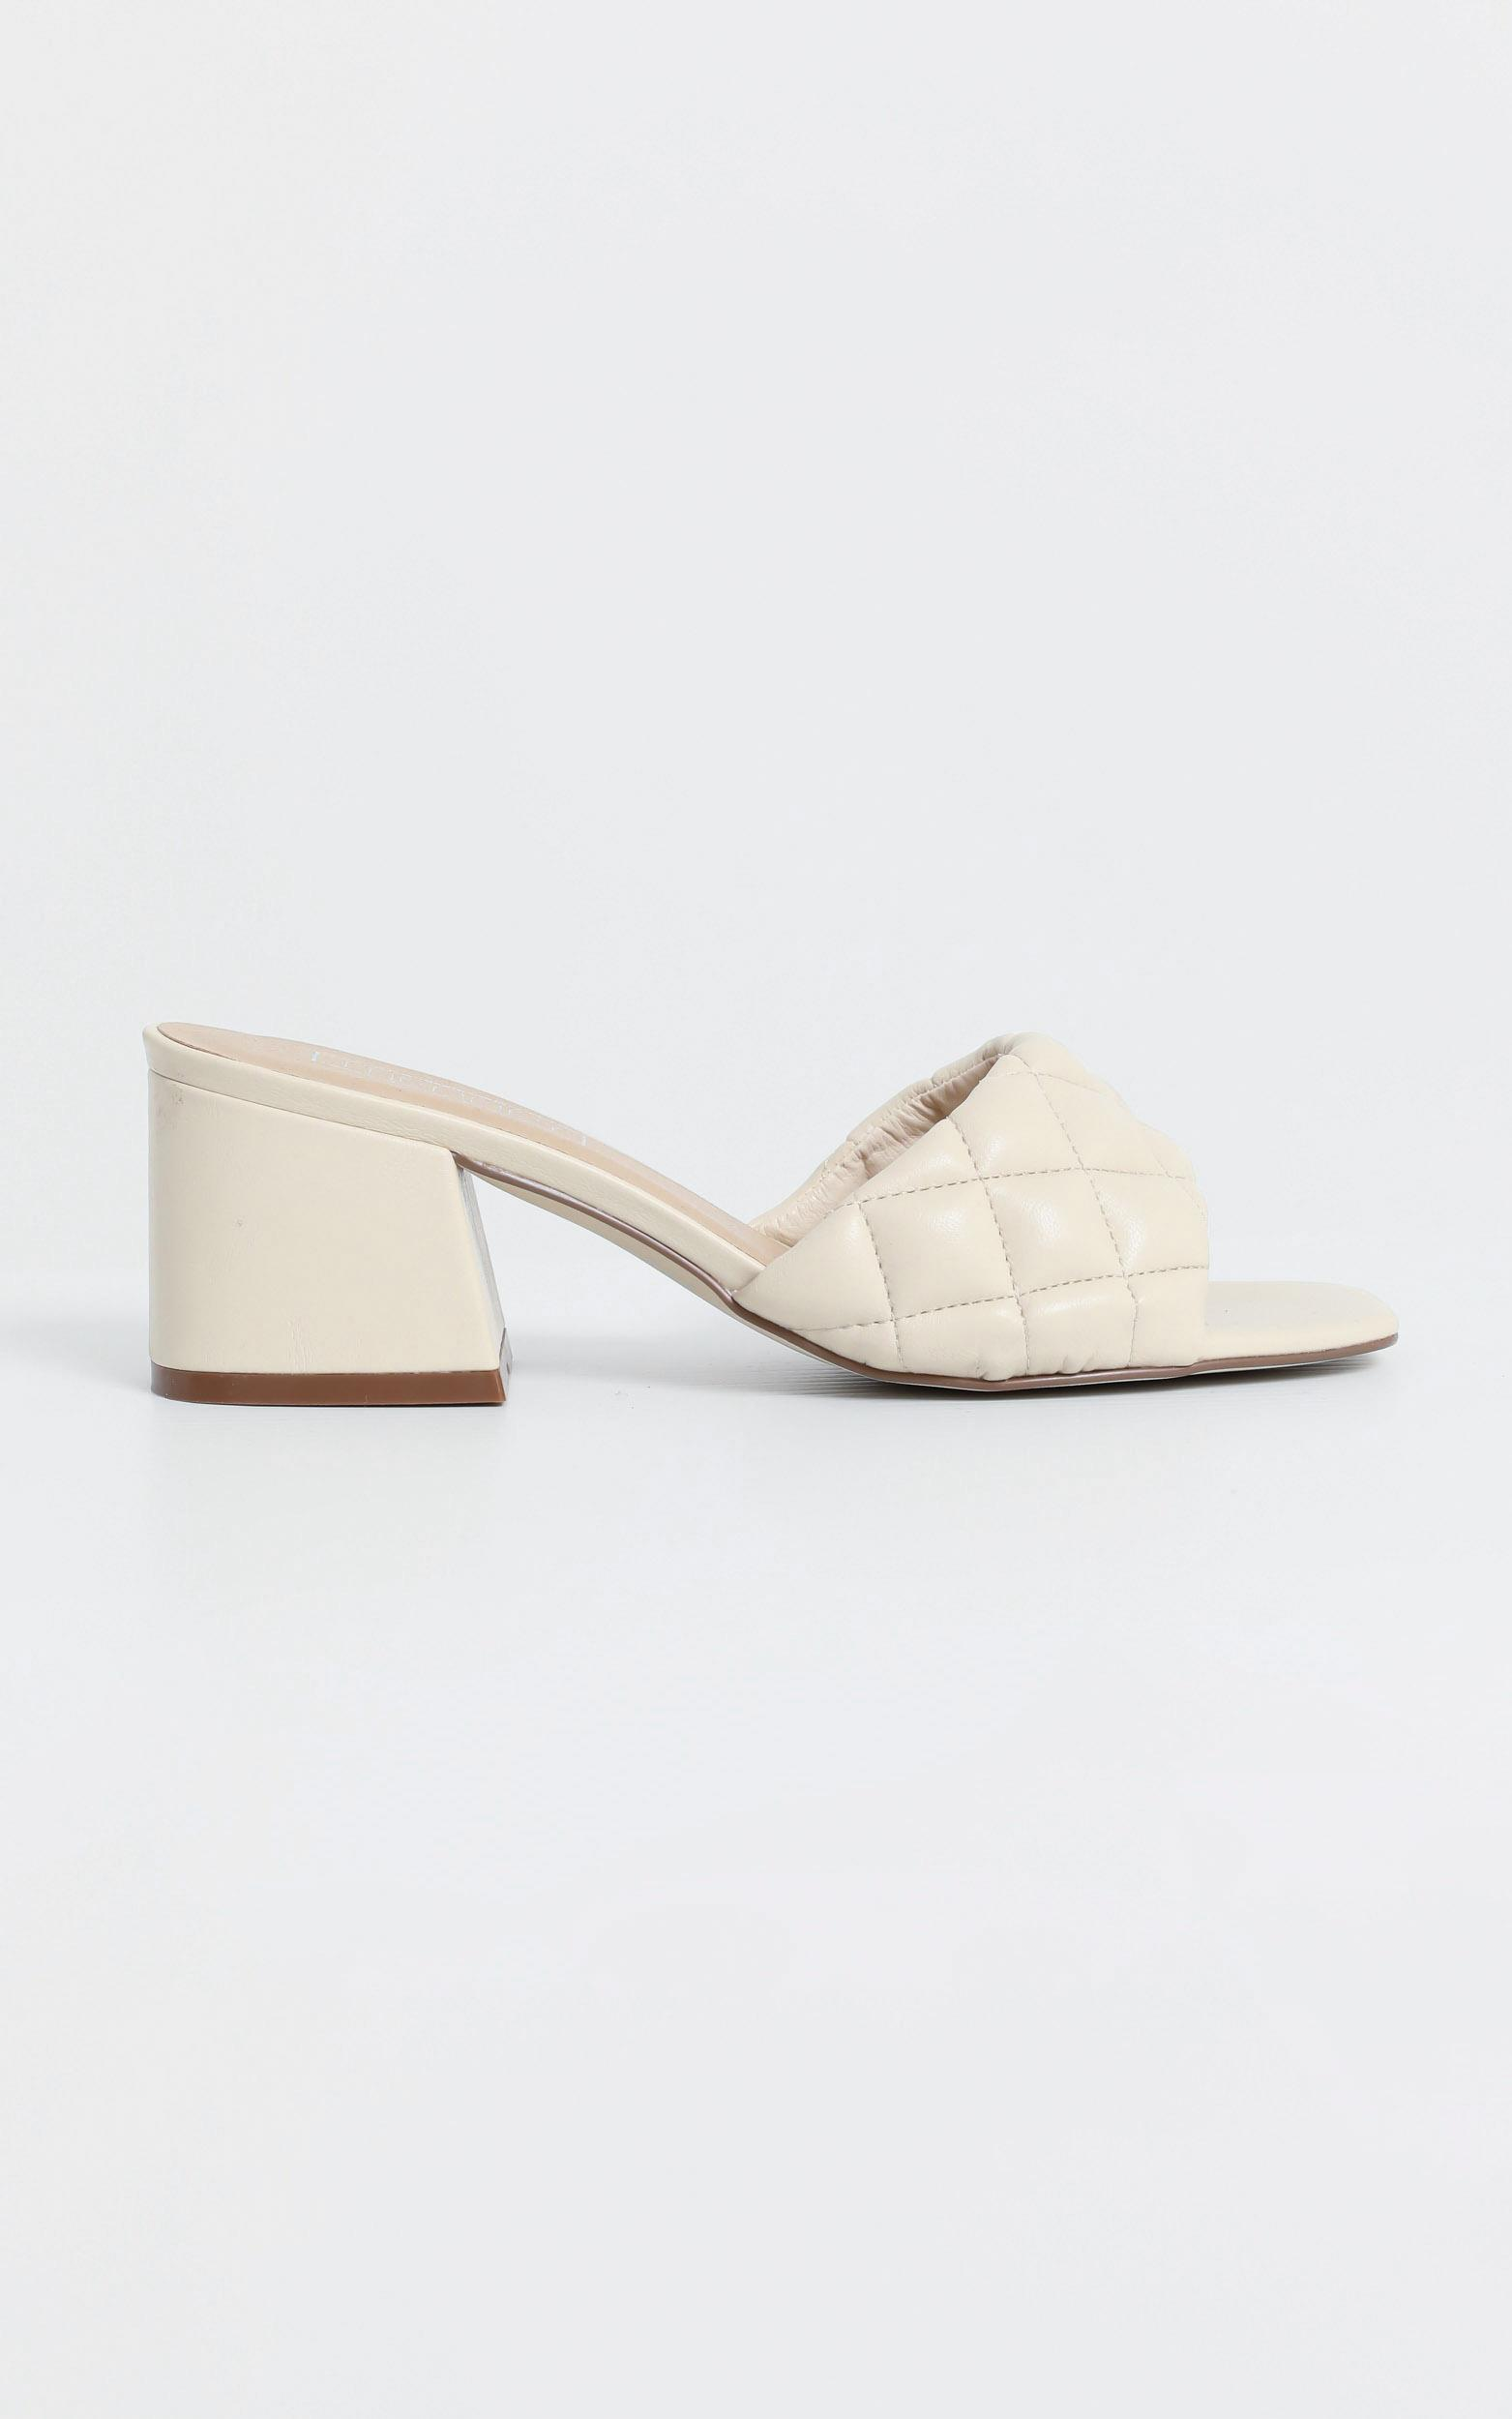 Therapy - Lucca Heels in Nude Quilted - 5, BRN9, hi-res image number null